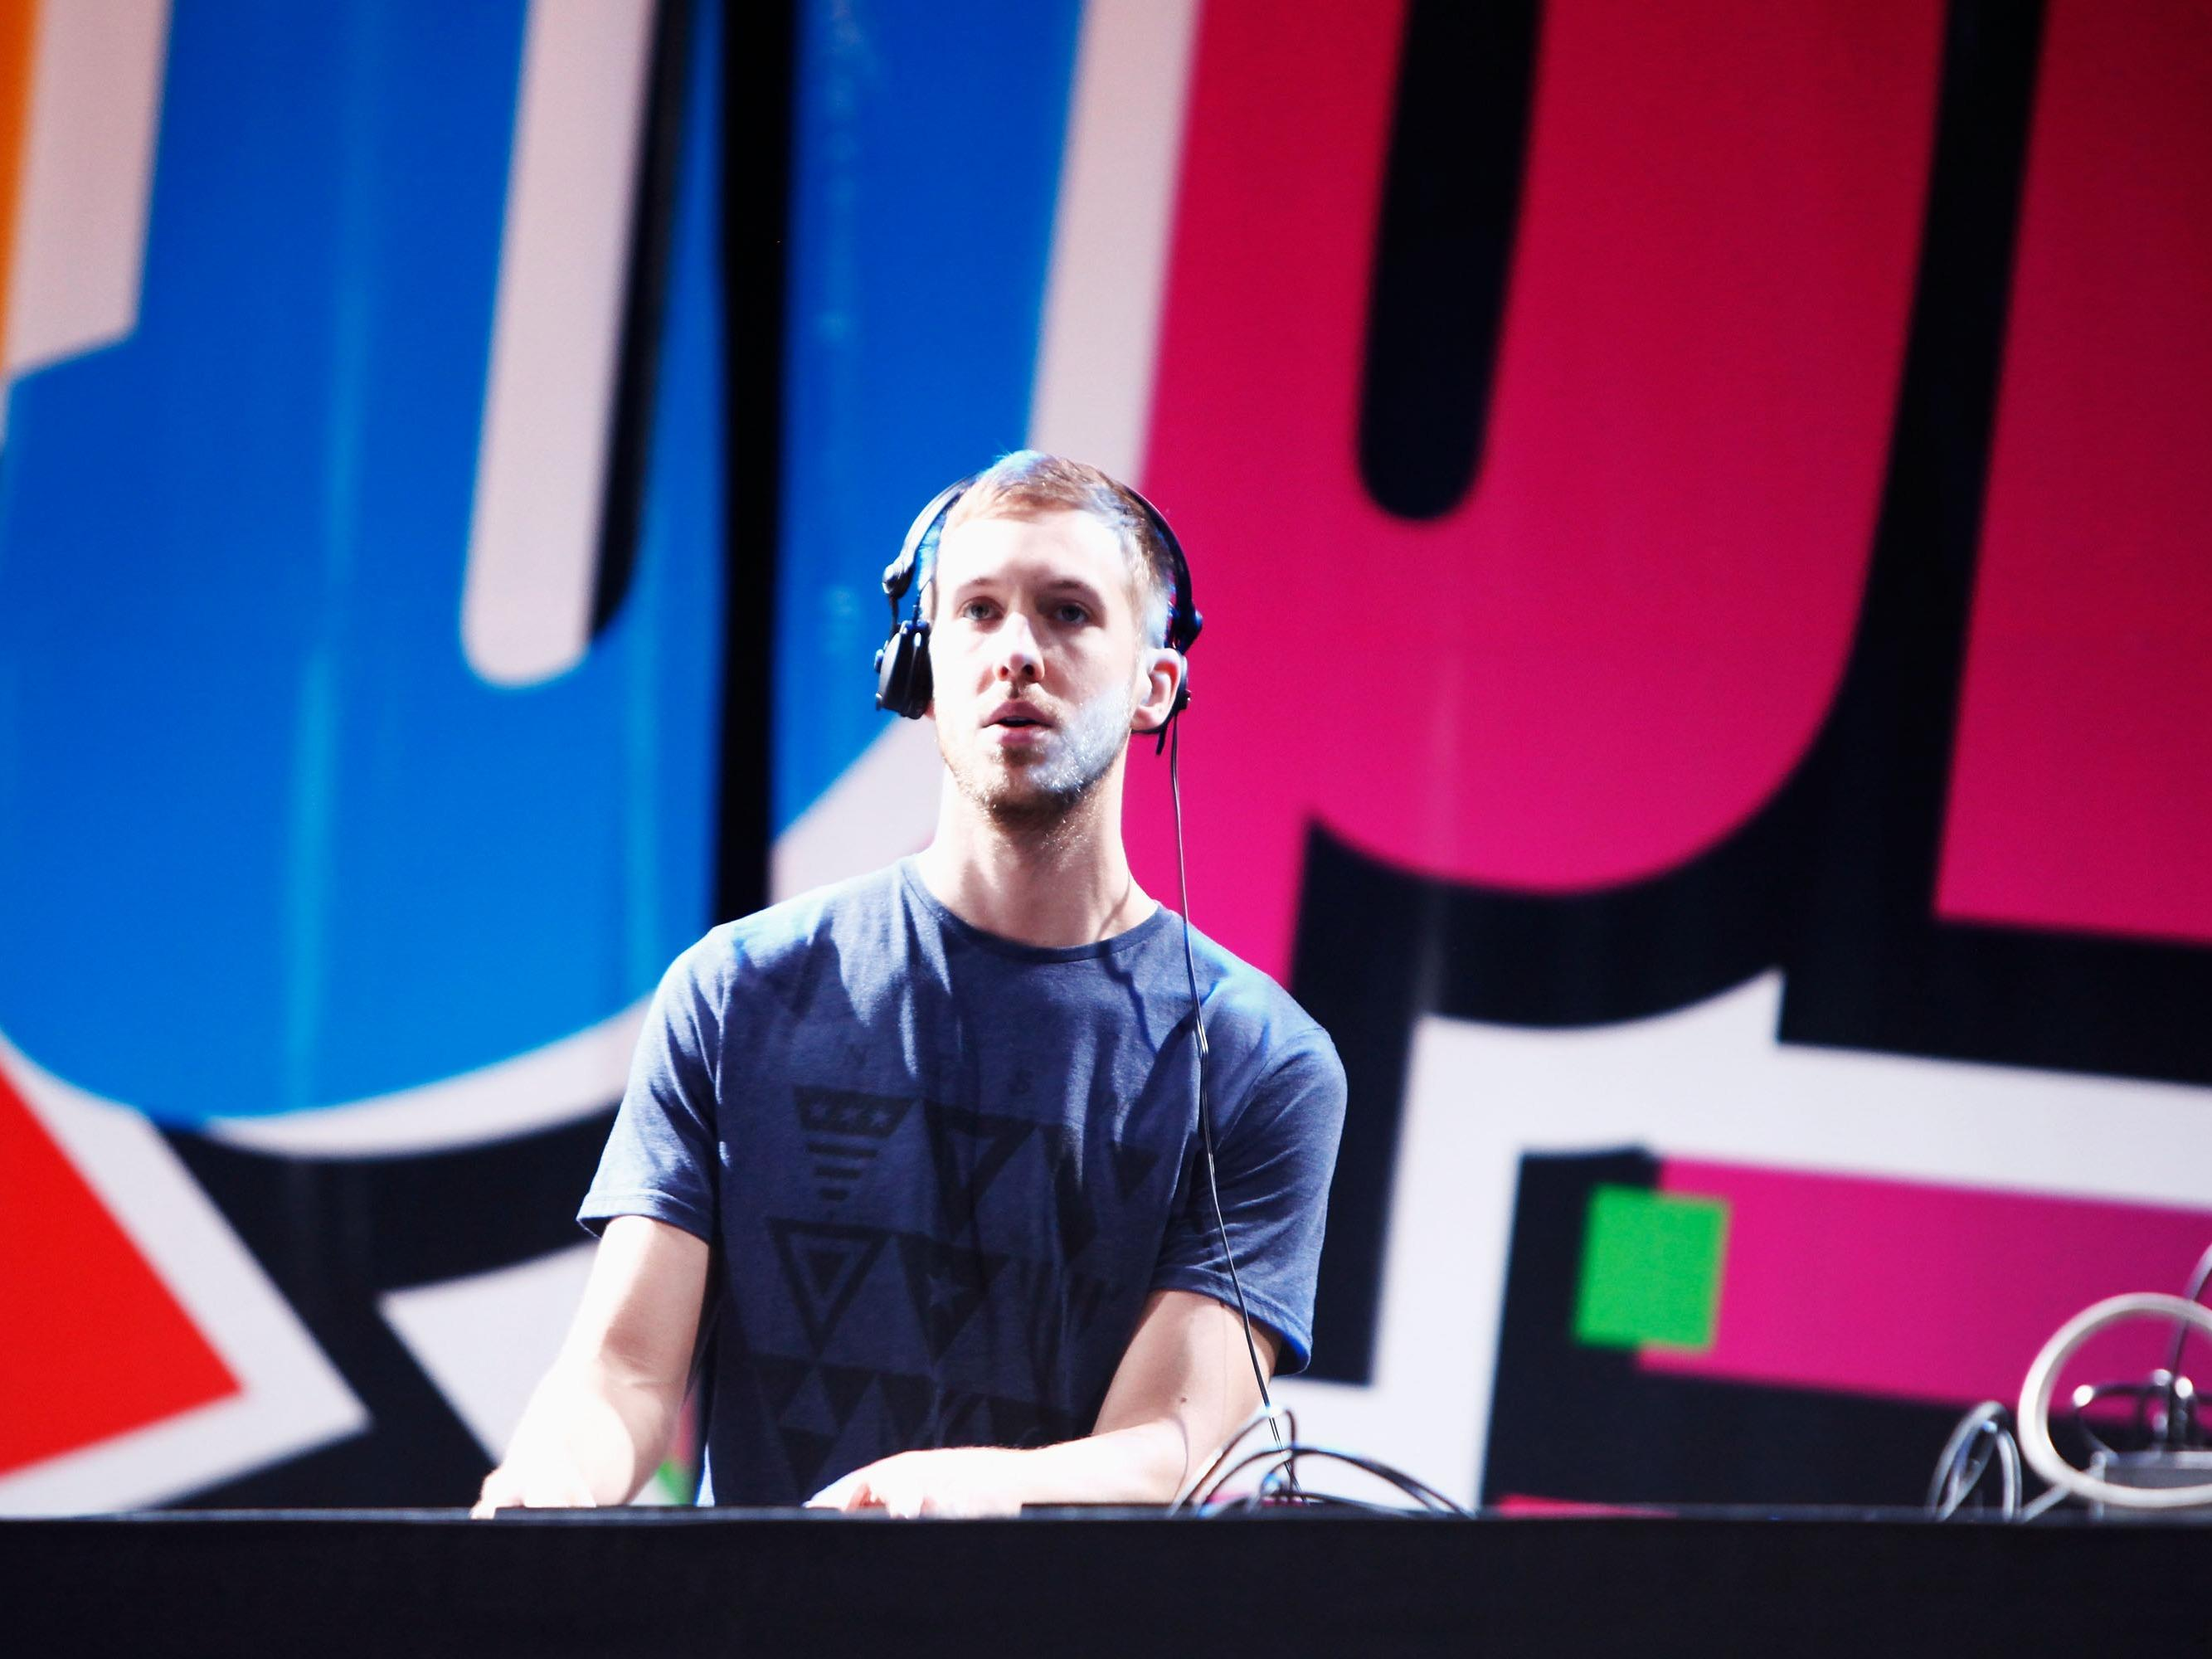 Taylor Swift's boyfriend is the highest-paid DJ in the world — here's what he makes